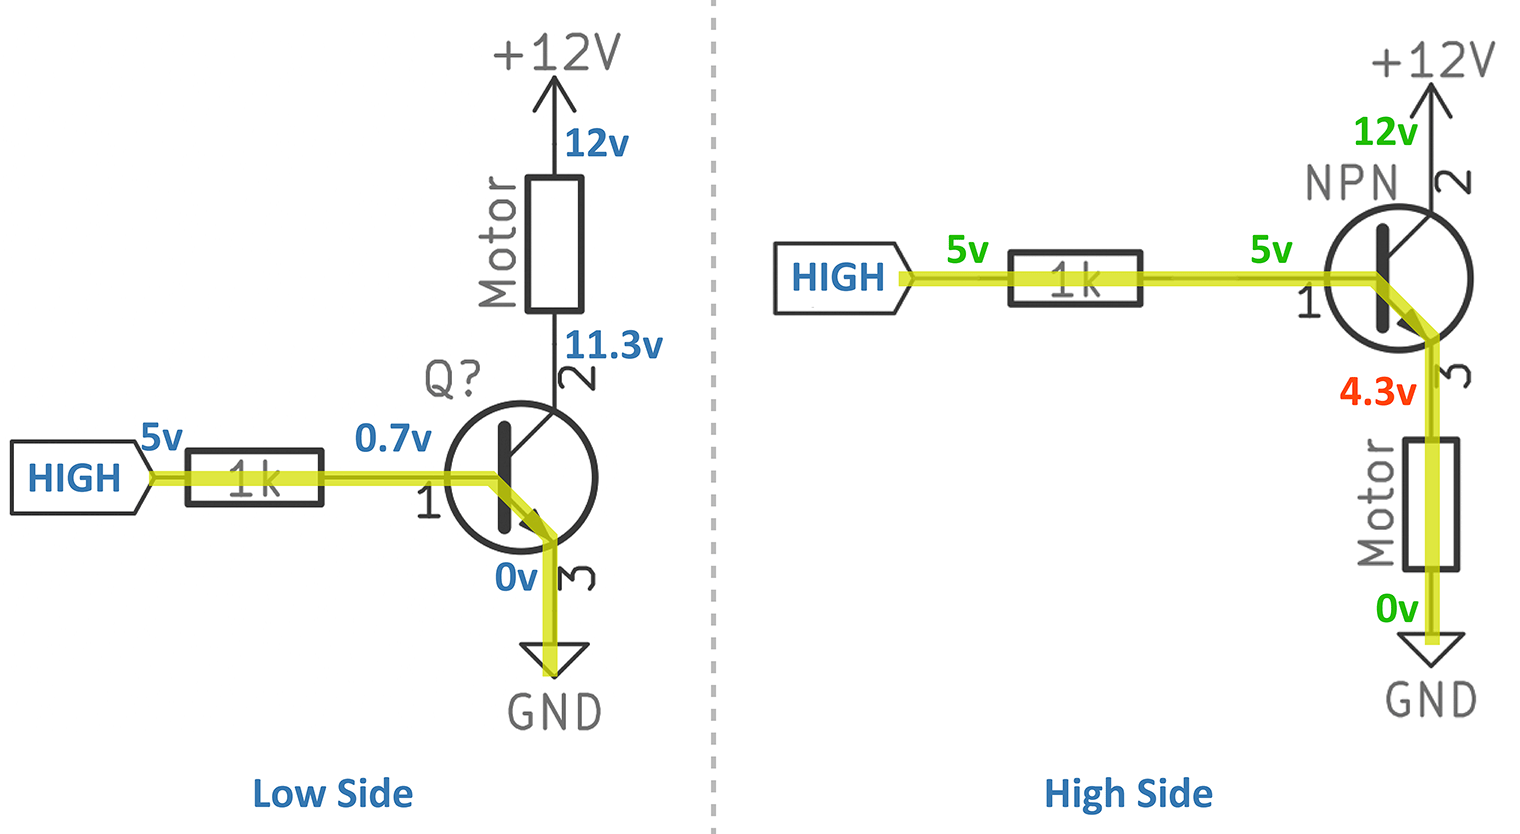 hight resolution of npn low side vs high side switch